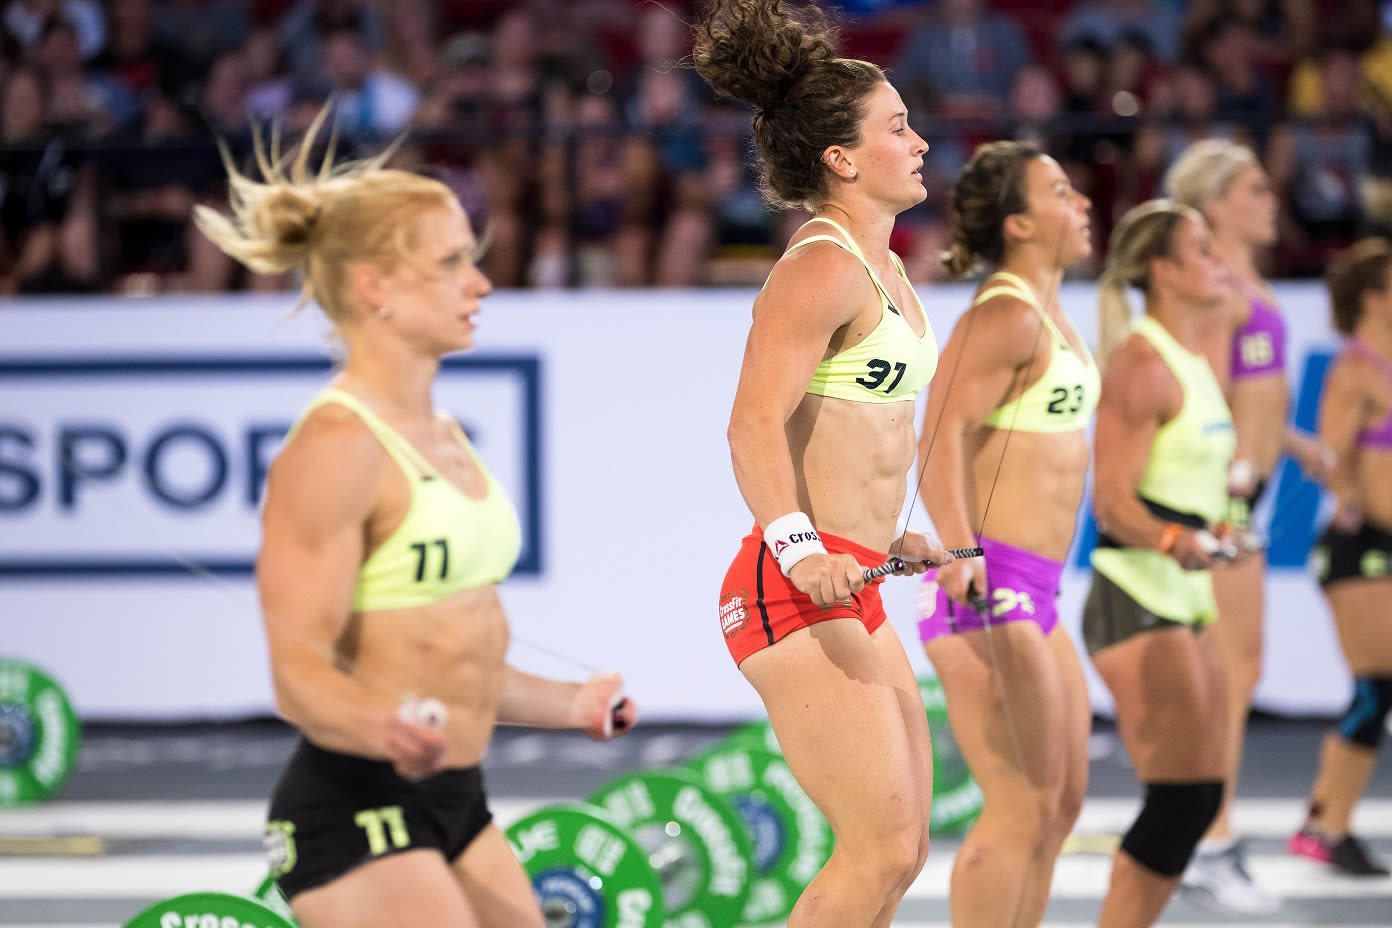 cfgames-roundup-womens-race